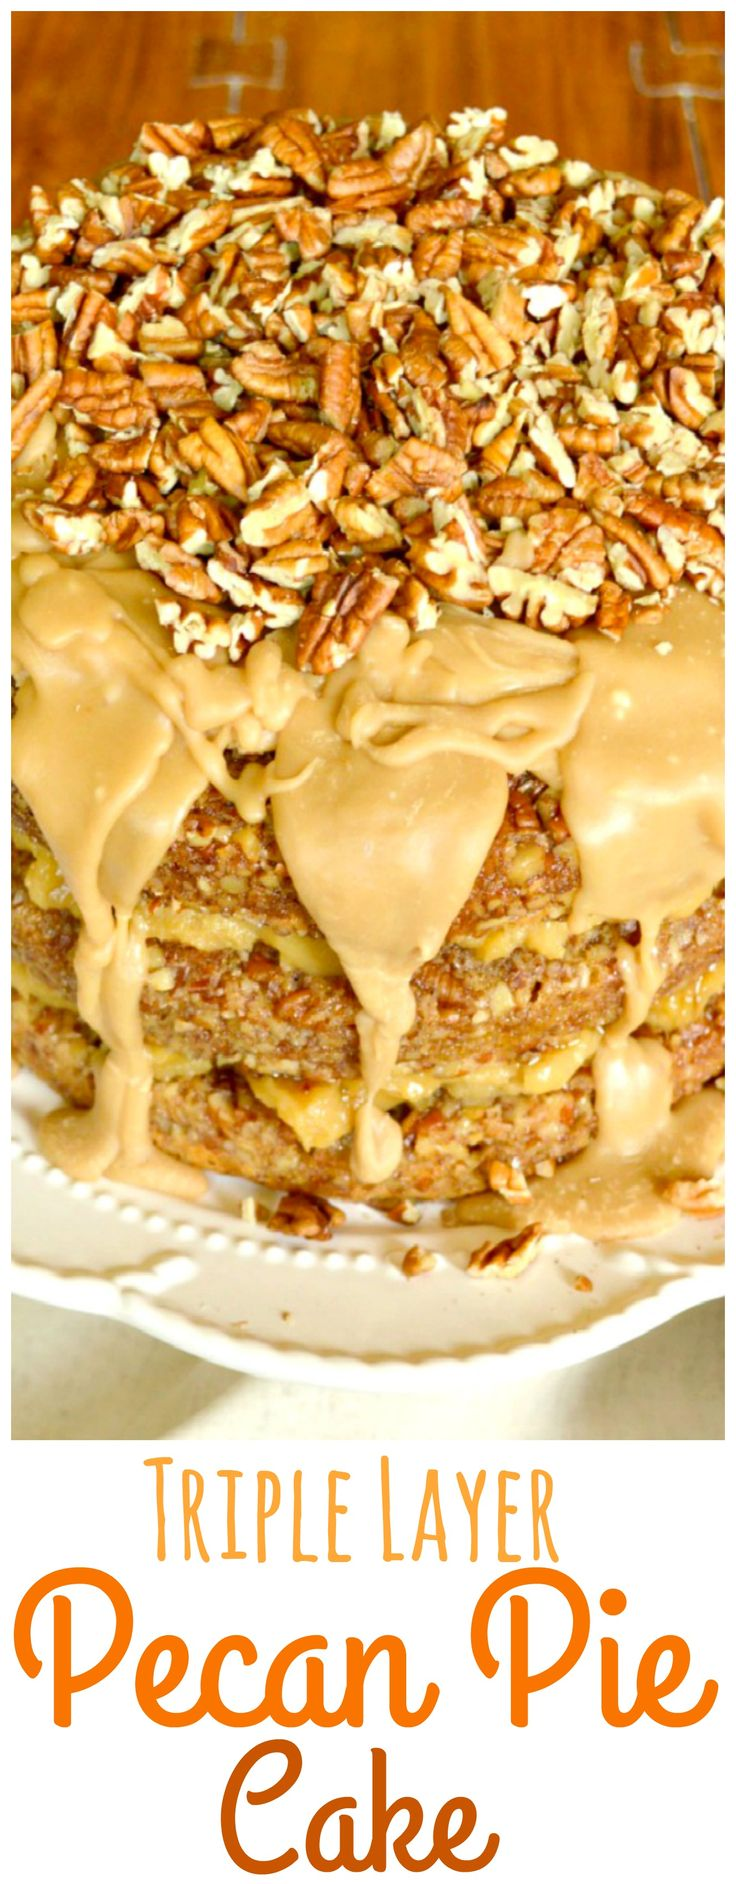 Pecan Pie Cake. Three layers of tender, delectable, sweet vanilla cake sandwiched between layers of decadent pecan pie filling, then topped with a lovely caramel glaze.